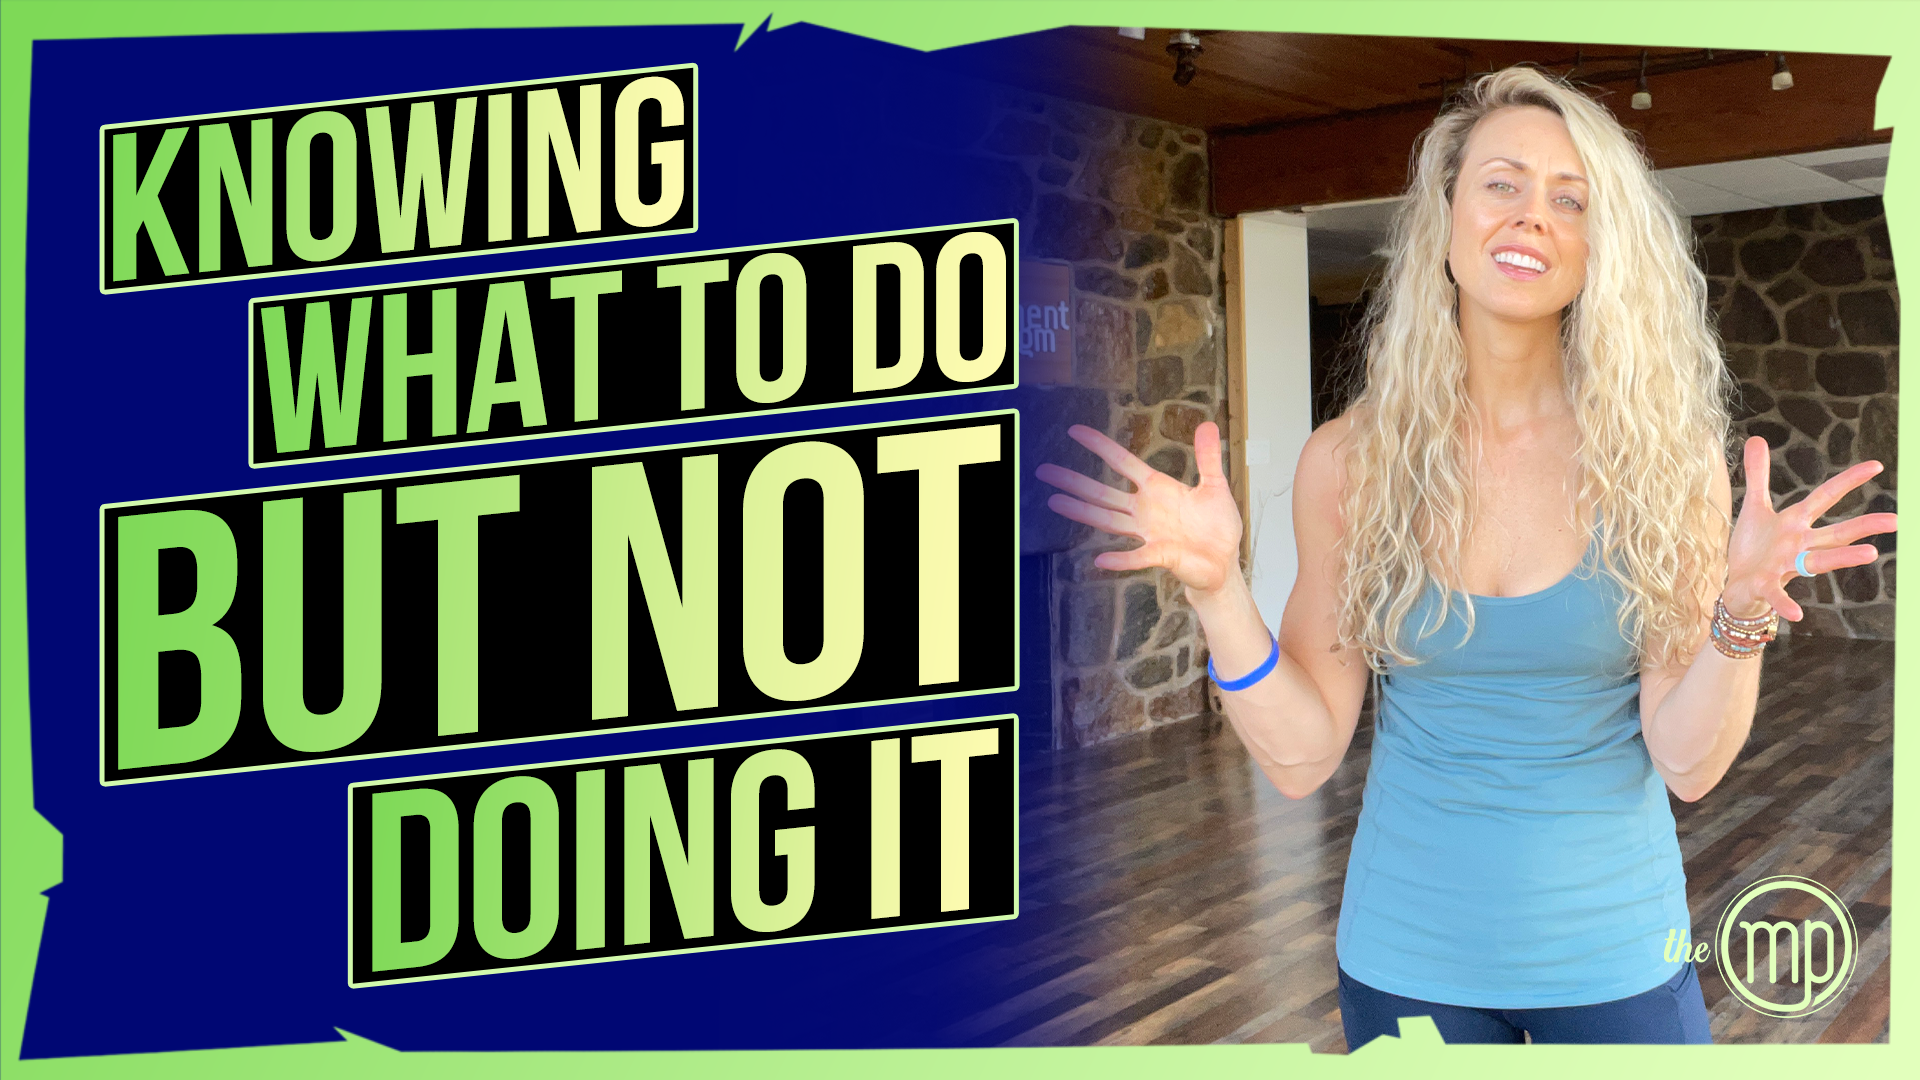 THE SCIENCE OF KNOWING WHAT TO DO BUT NOT DOING IT | 6 Mindset Hacks